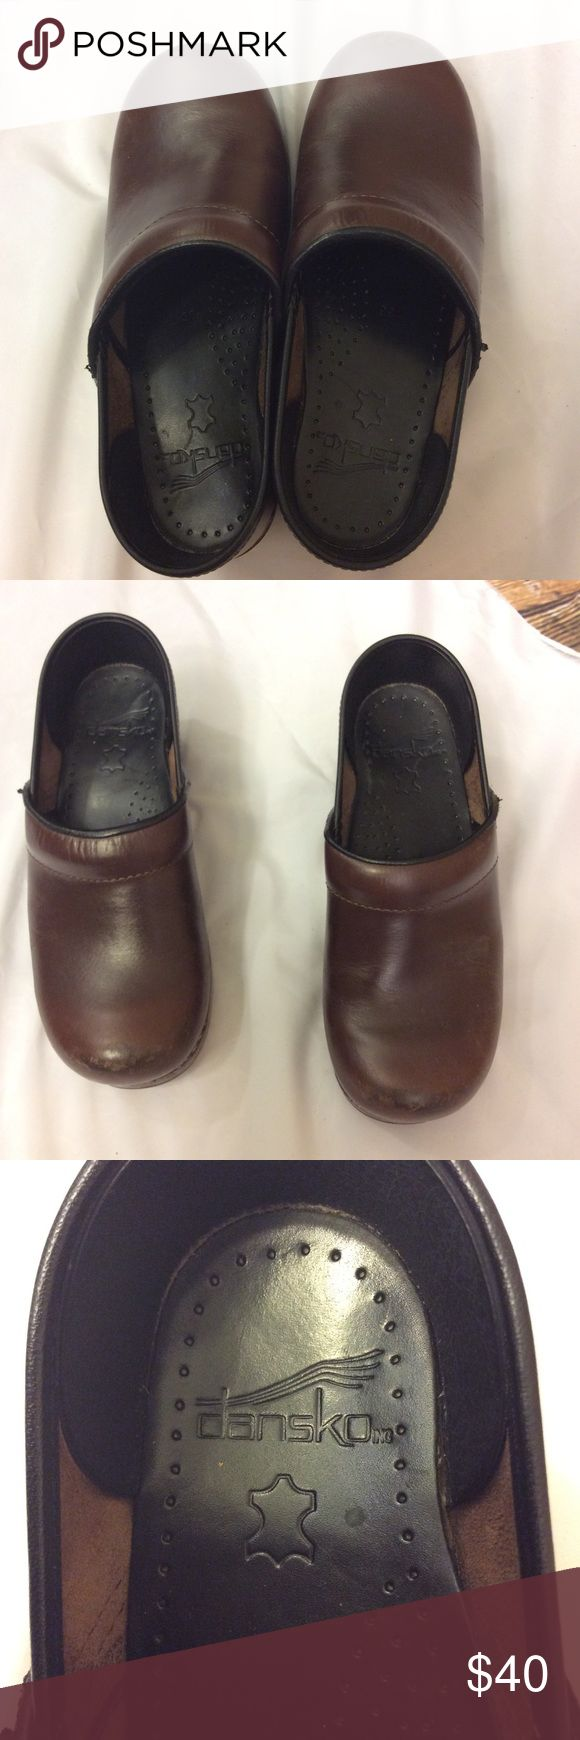 Dansko brown clog size 36 Good preowned condition Dansko brown clogs Shows some  wear on heels Inside is very clean Toes show minor scuffing Size 36 Length from toe to heel 9 1/4 inches measurement taken from inside Width 3 1/4 inches Dansko Shoes Mules & Clogs